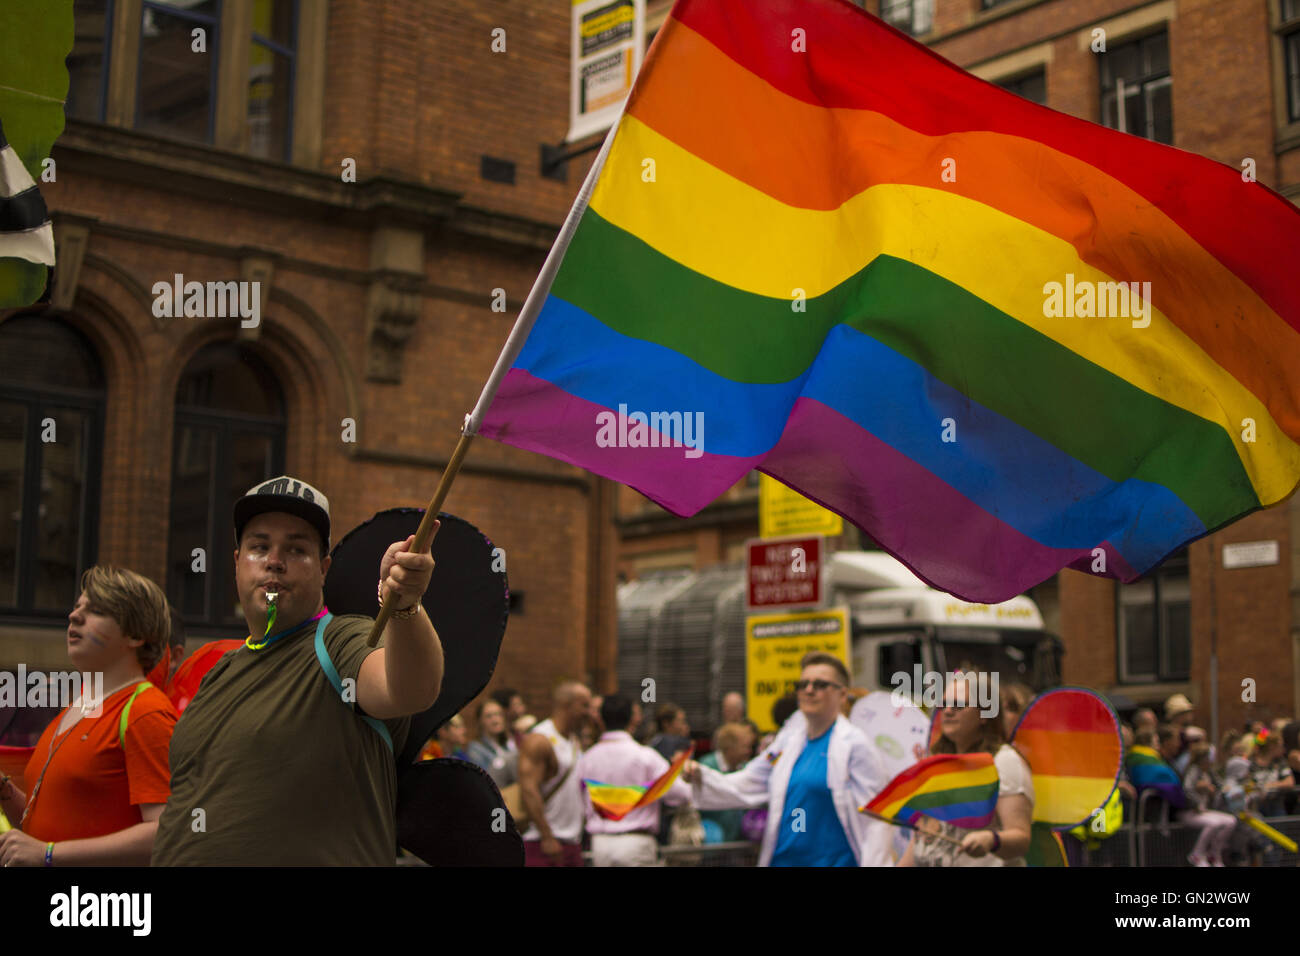 Manchester, UK. 27th August, 2016. Manchester Pride Parade. Man wearing wings waves gay pride flag Credit:  Tom Stock Photo